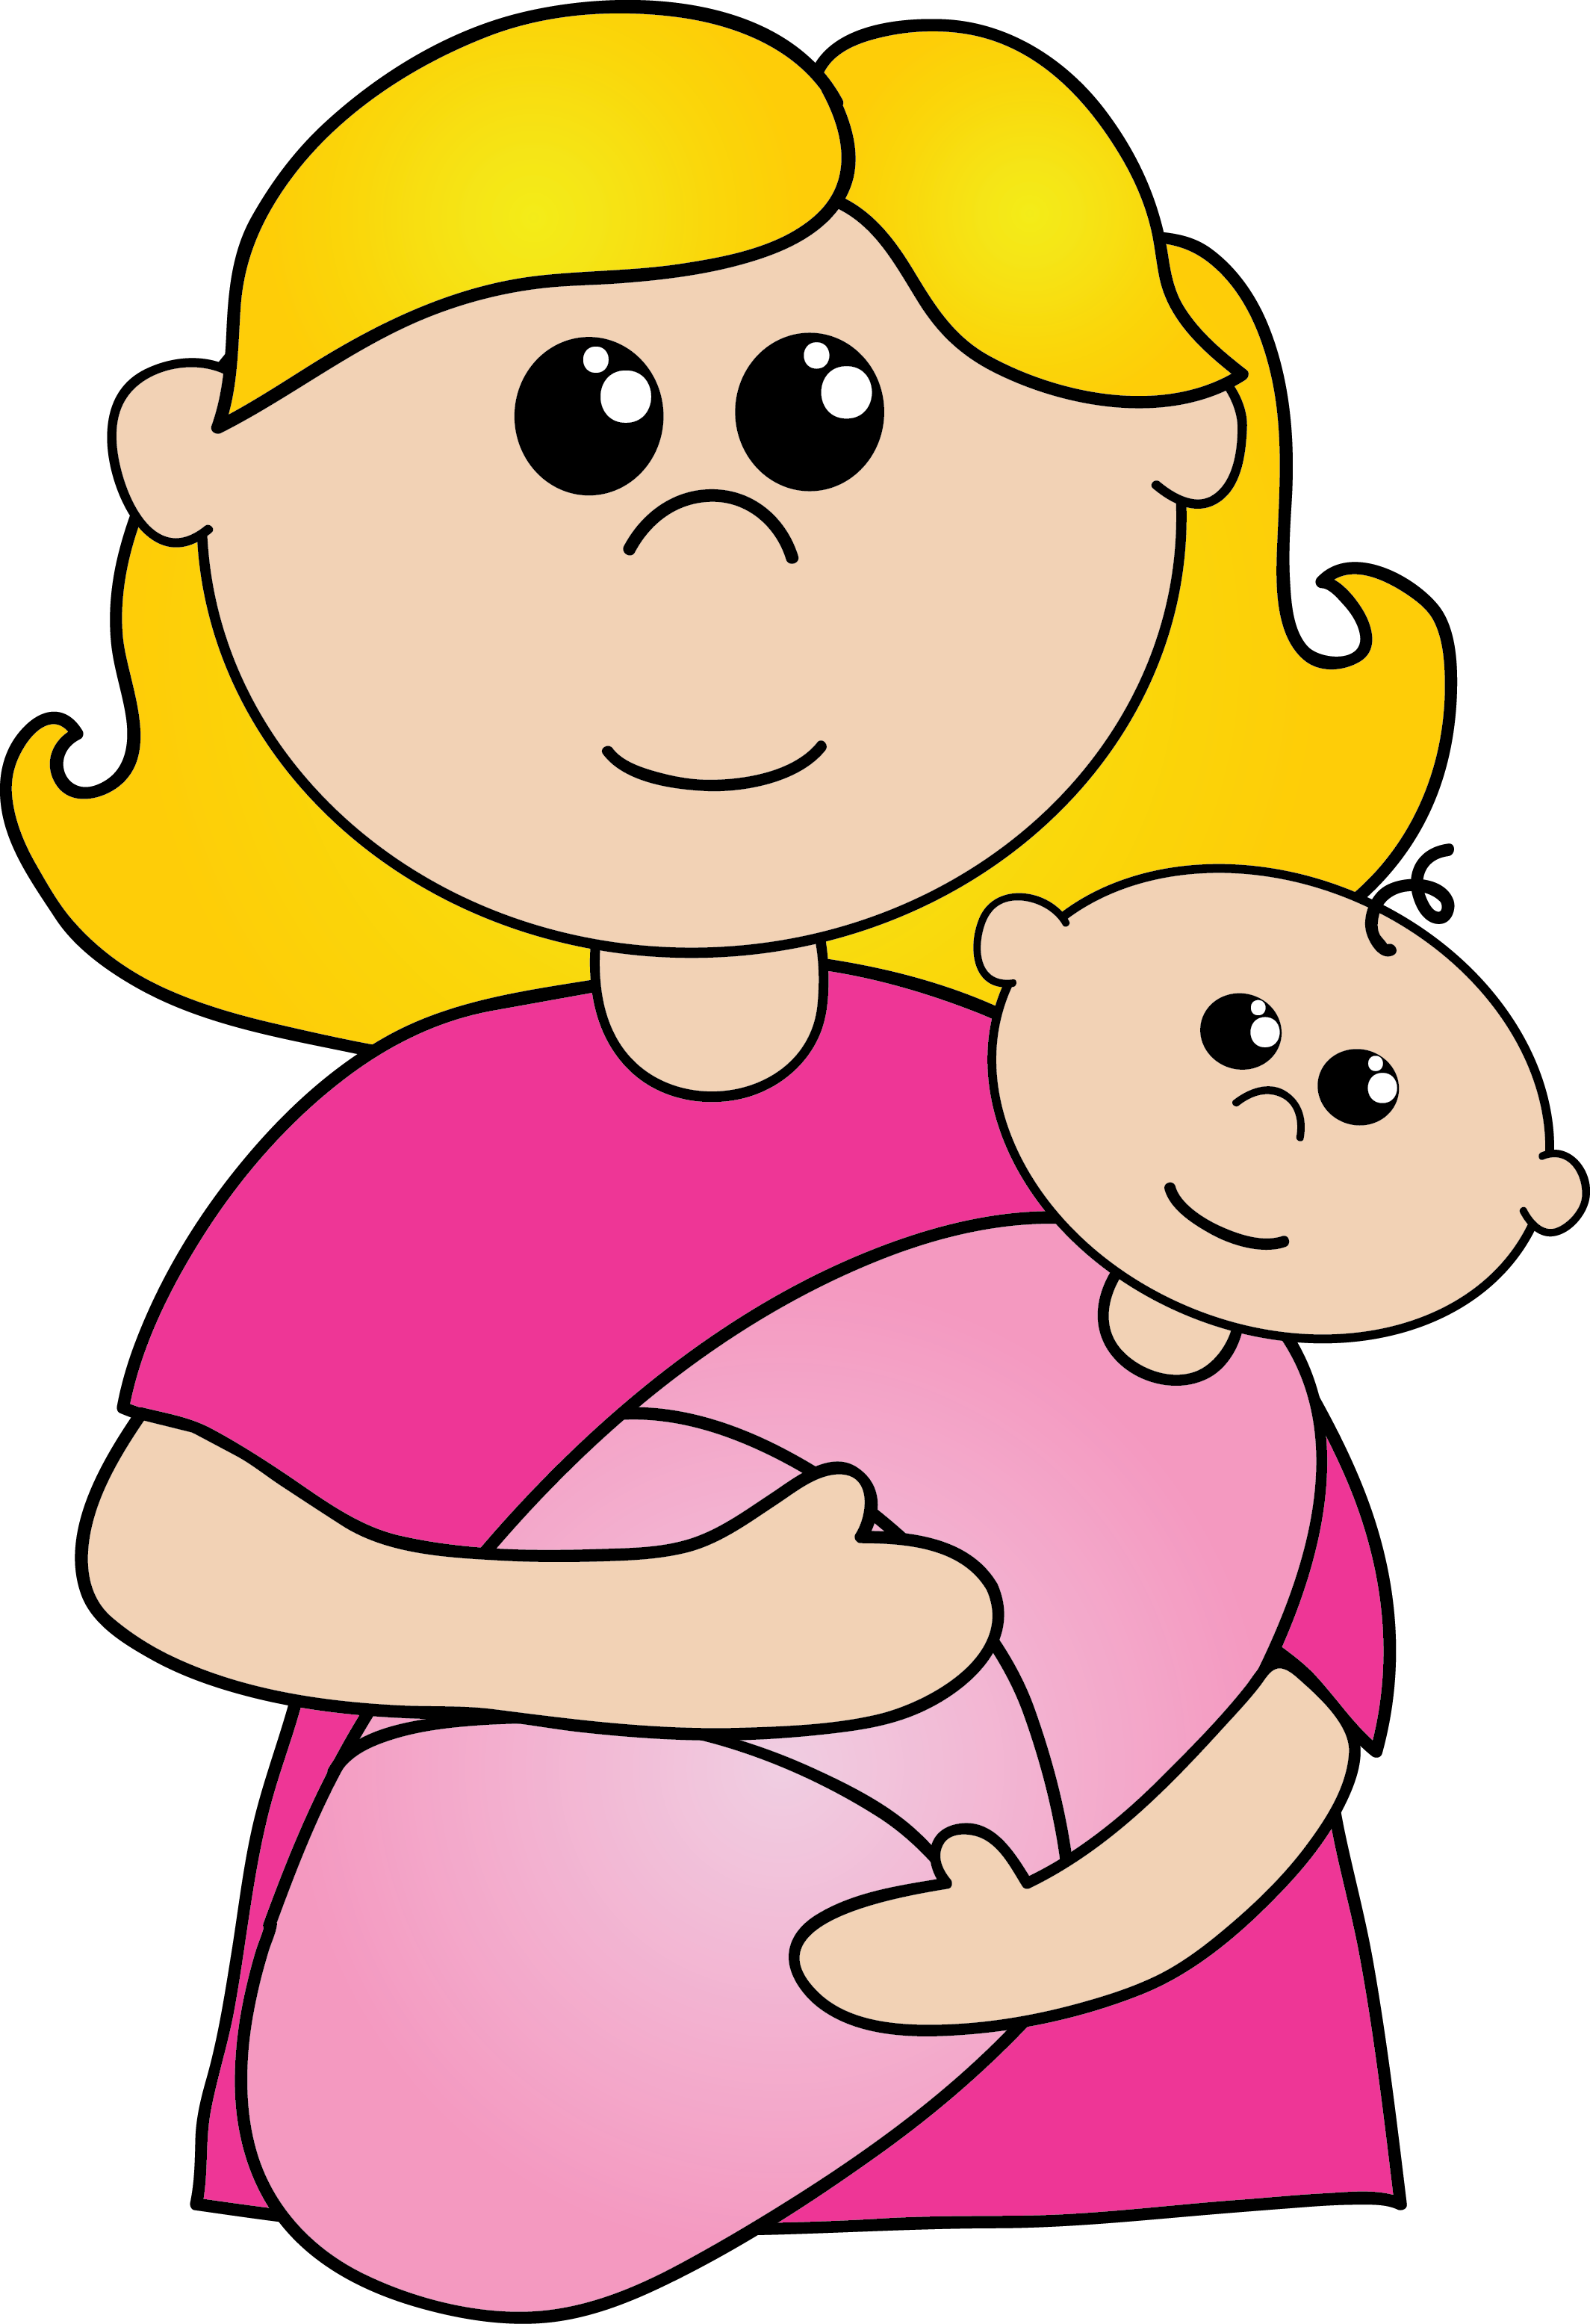 Pictures mothers clip art. Mother clipart cool mom image royalty free download